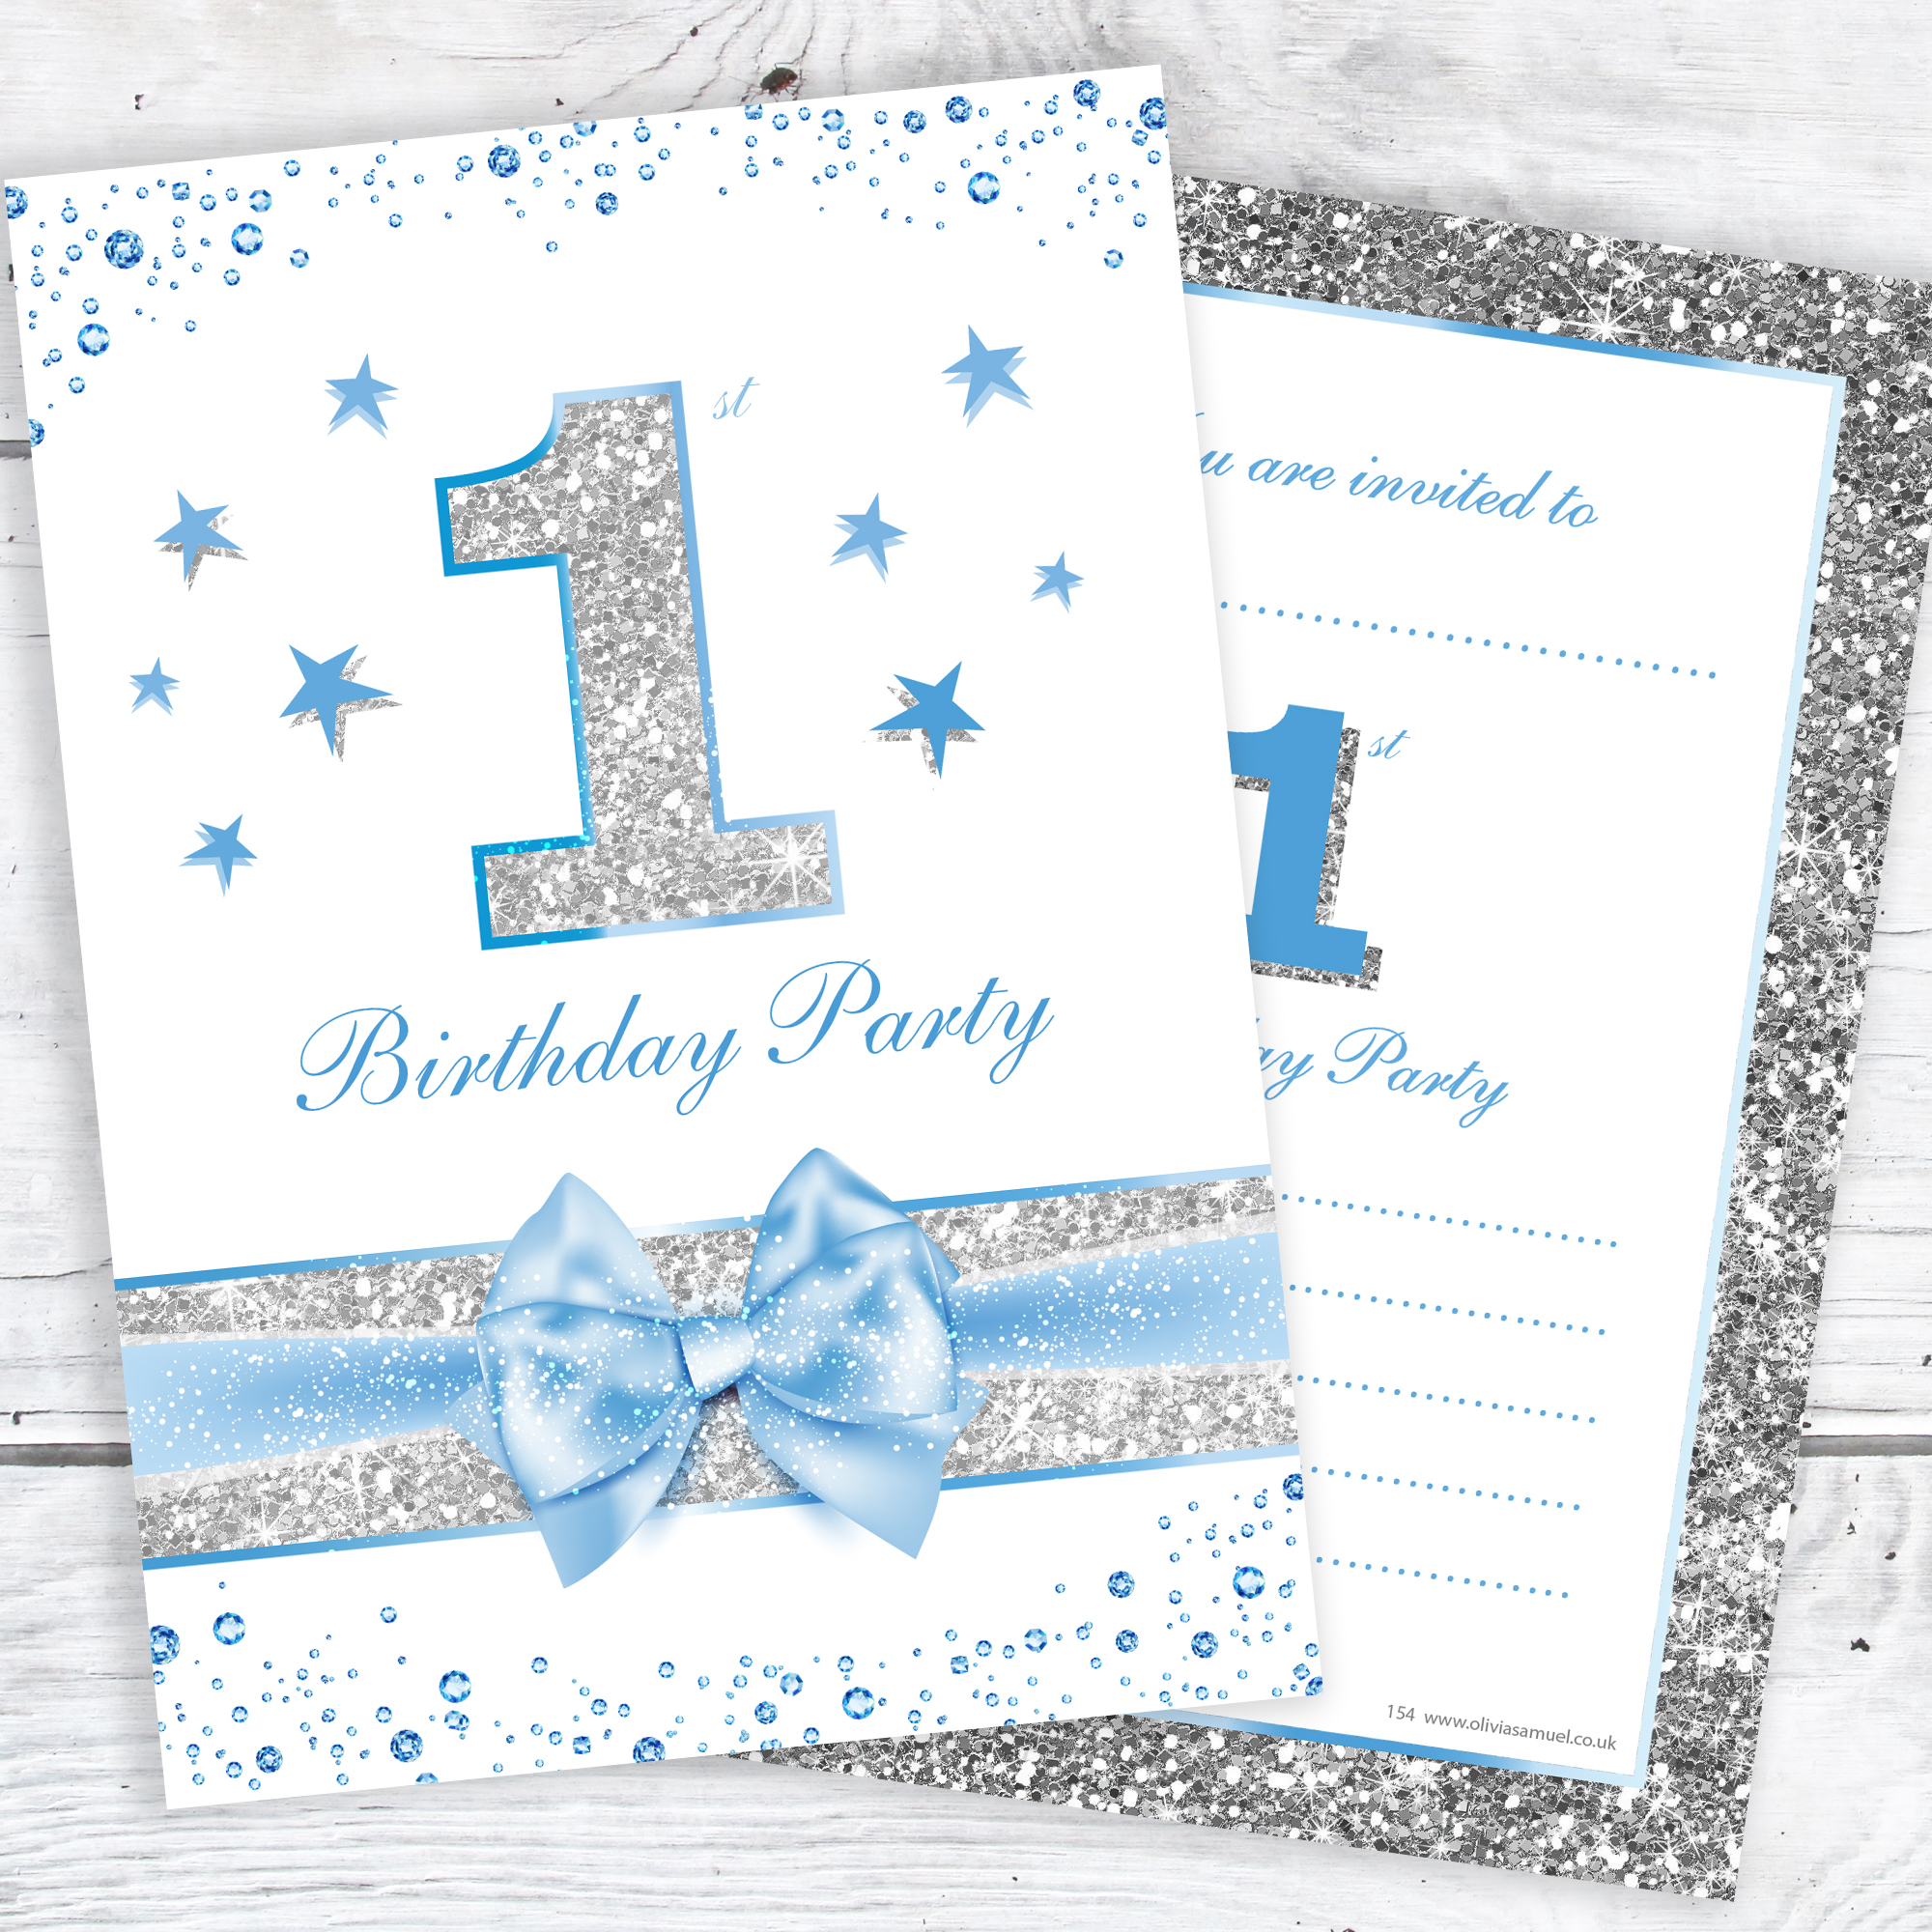 First Birthday Party Invitations – Baby Boy Blue Sparkly Design and Photo Effect Silver Glitter (Pack 10)